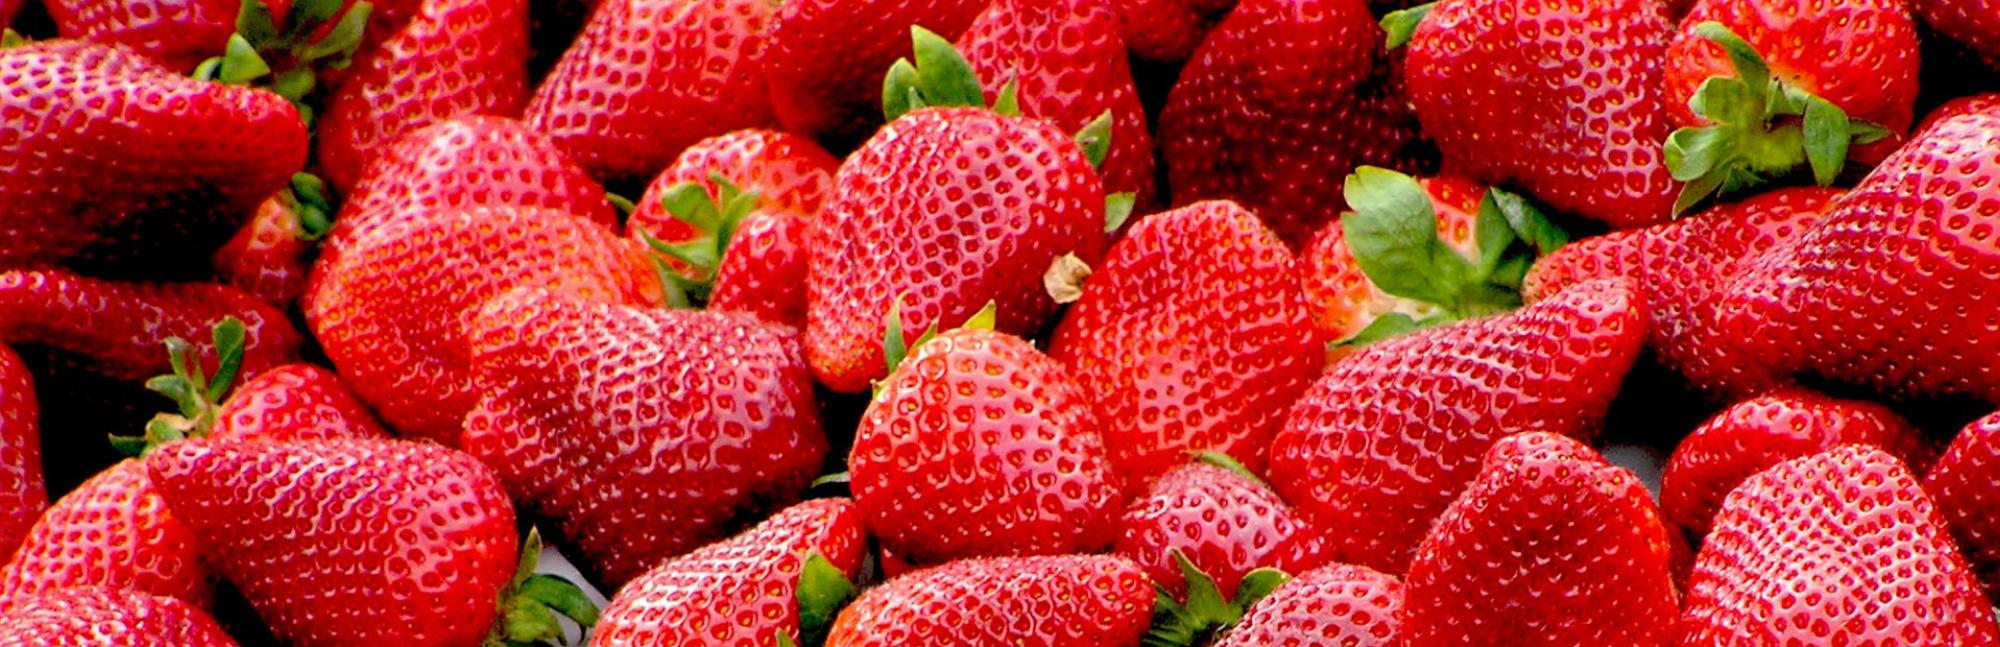 Close up of pile of strawberries